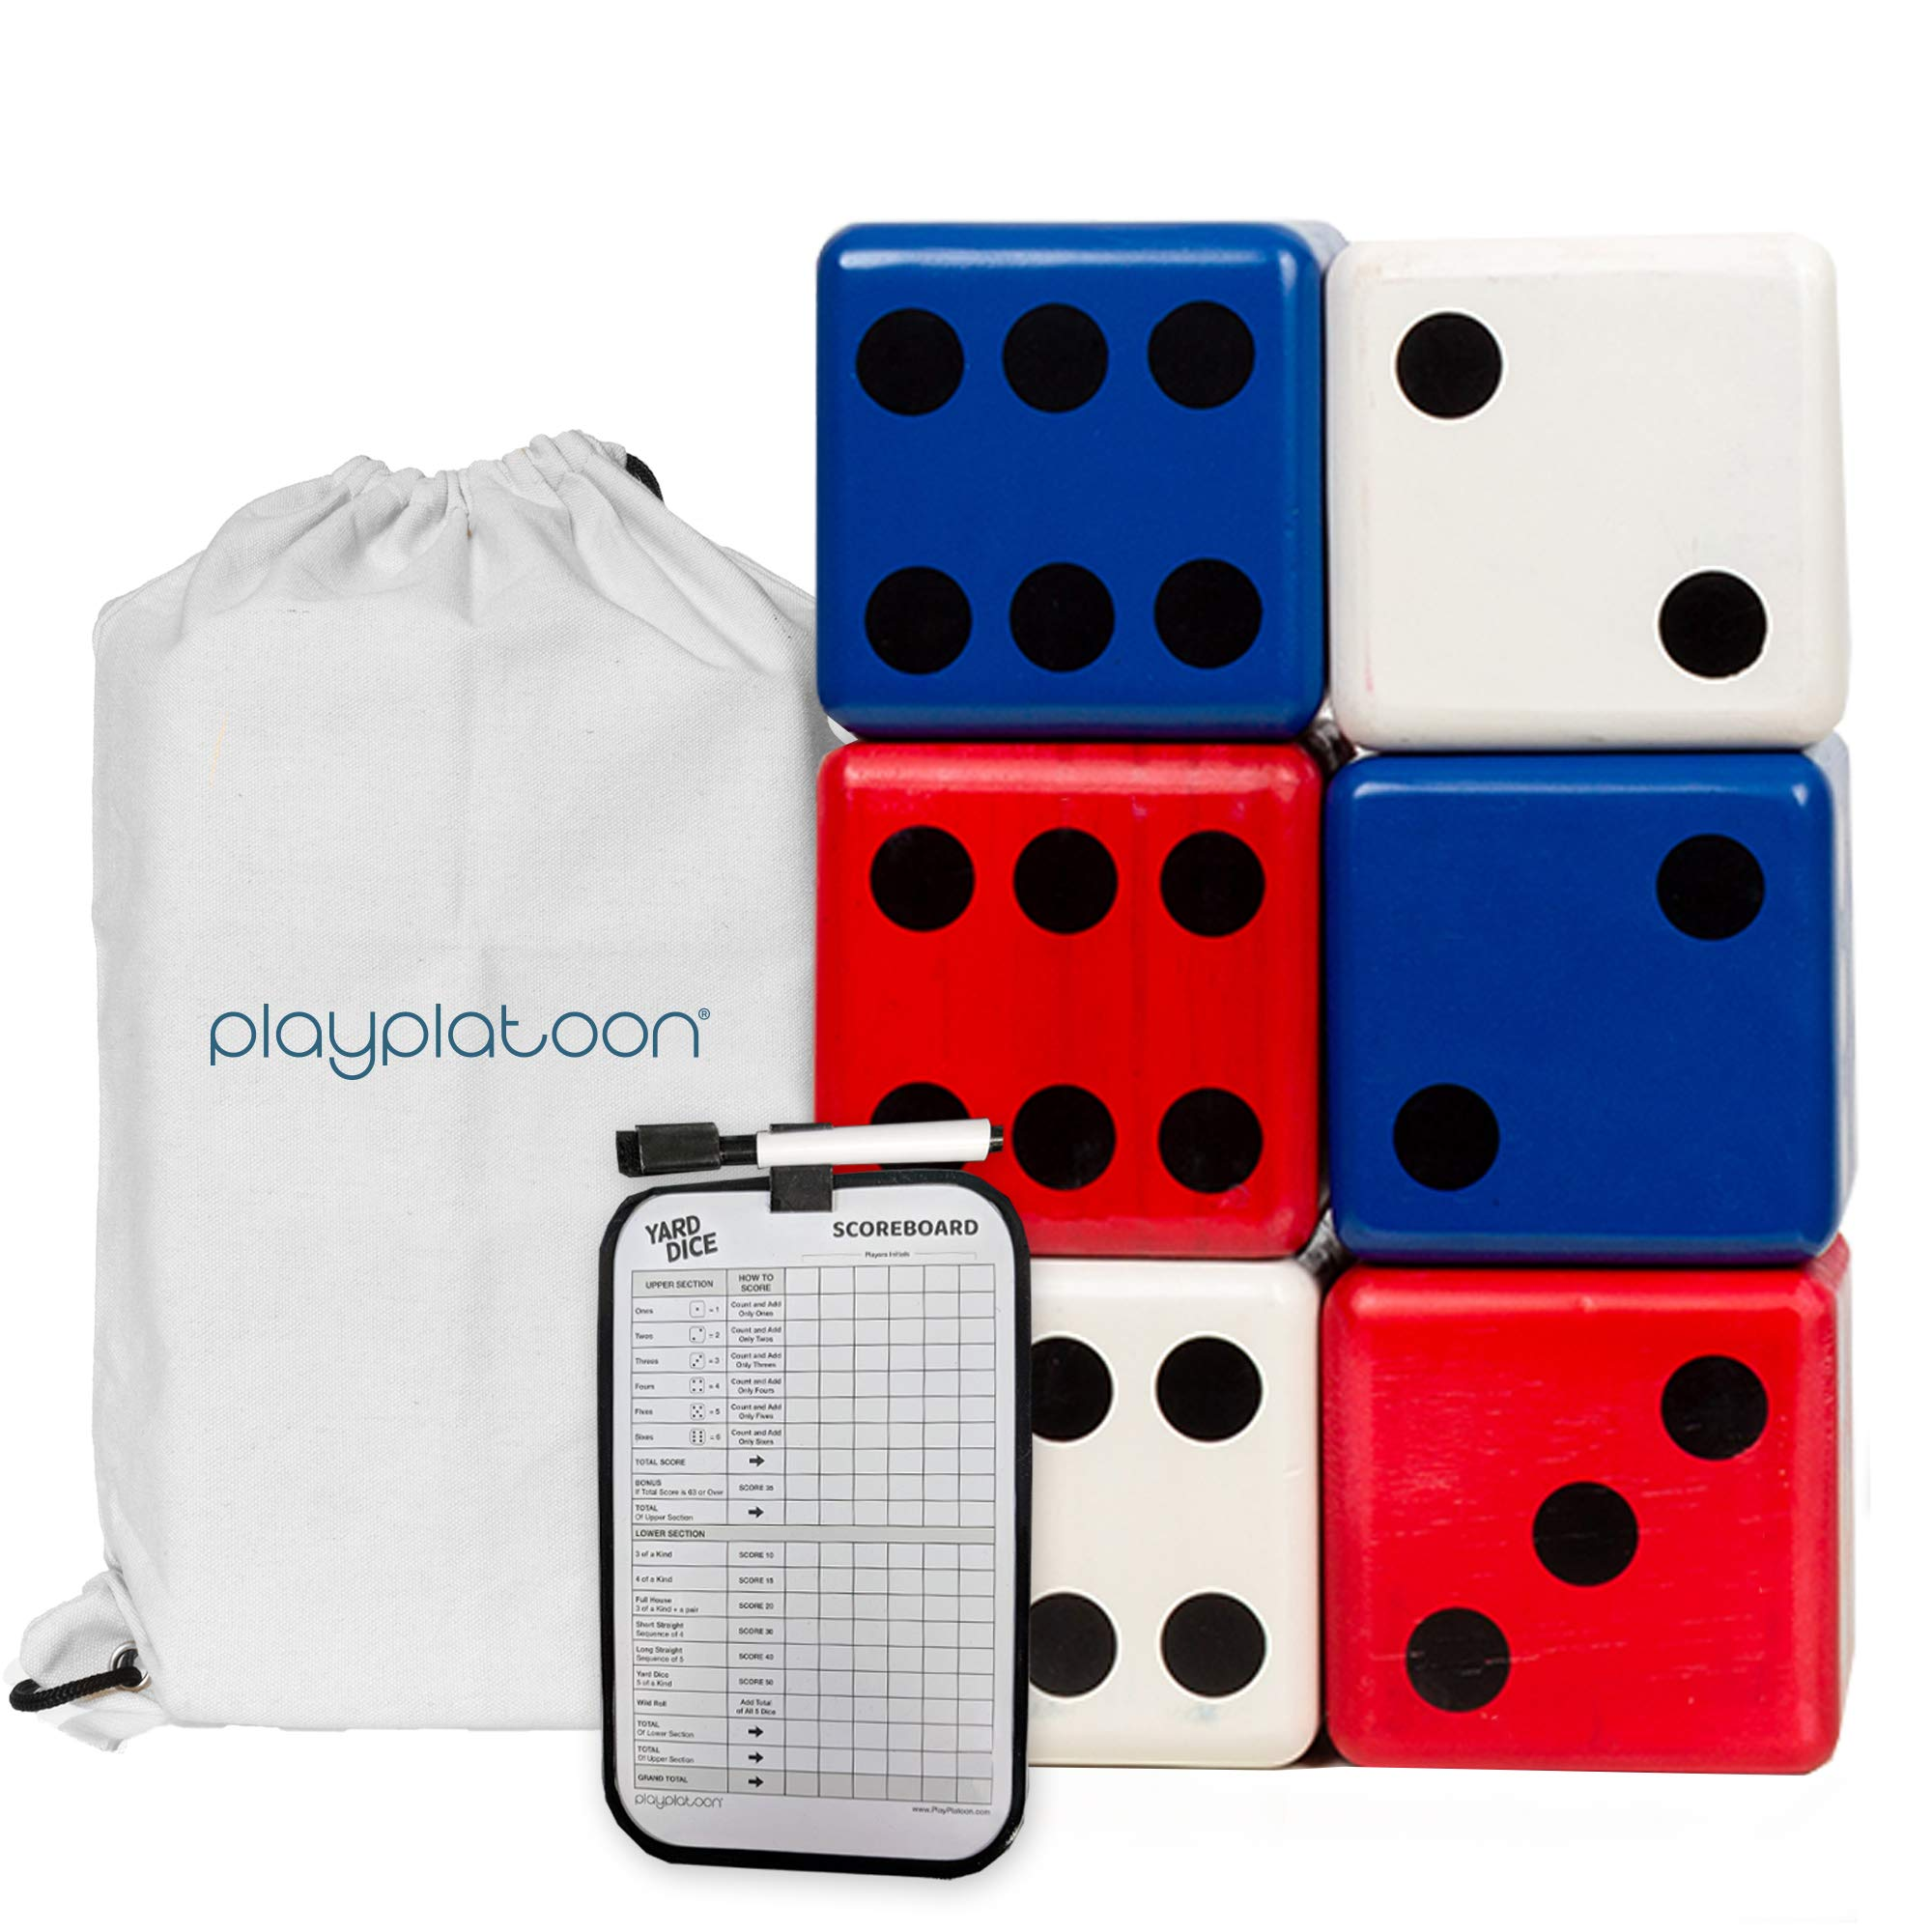 Lawn Dice with Scoreboard - Giant Red White & Blue Wooden Yard Dice Outdoor Game by Play Platoon